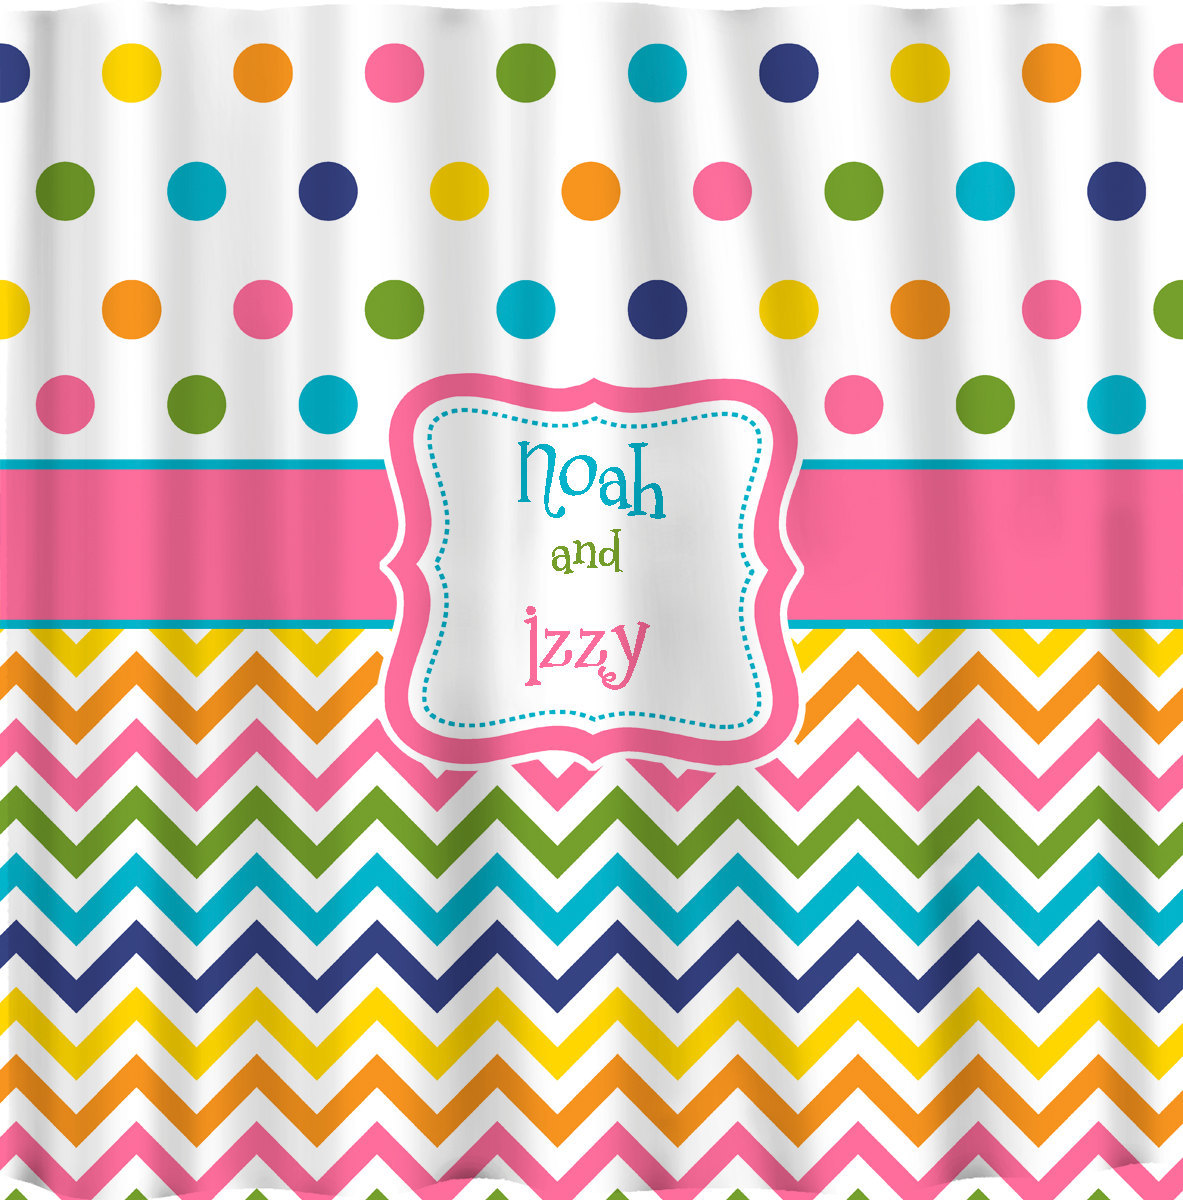 Shower Curtain - Confetti Multi color Dots and Chevron - Any colors of your choi